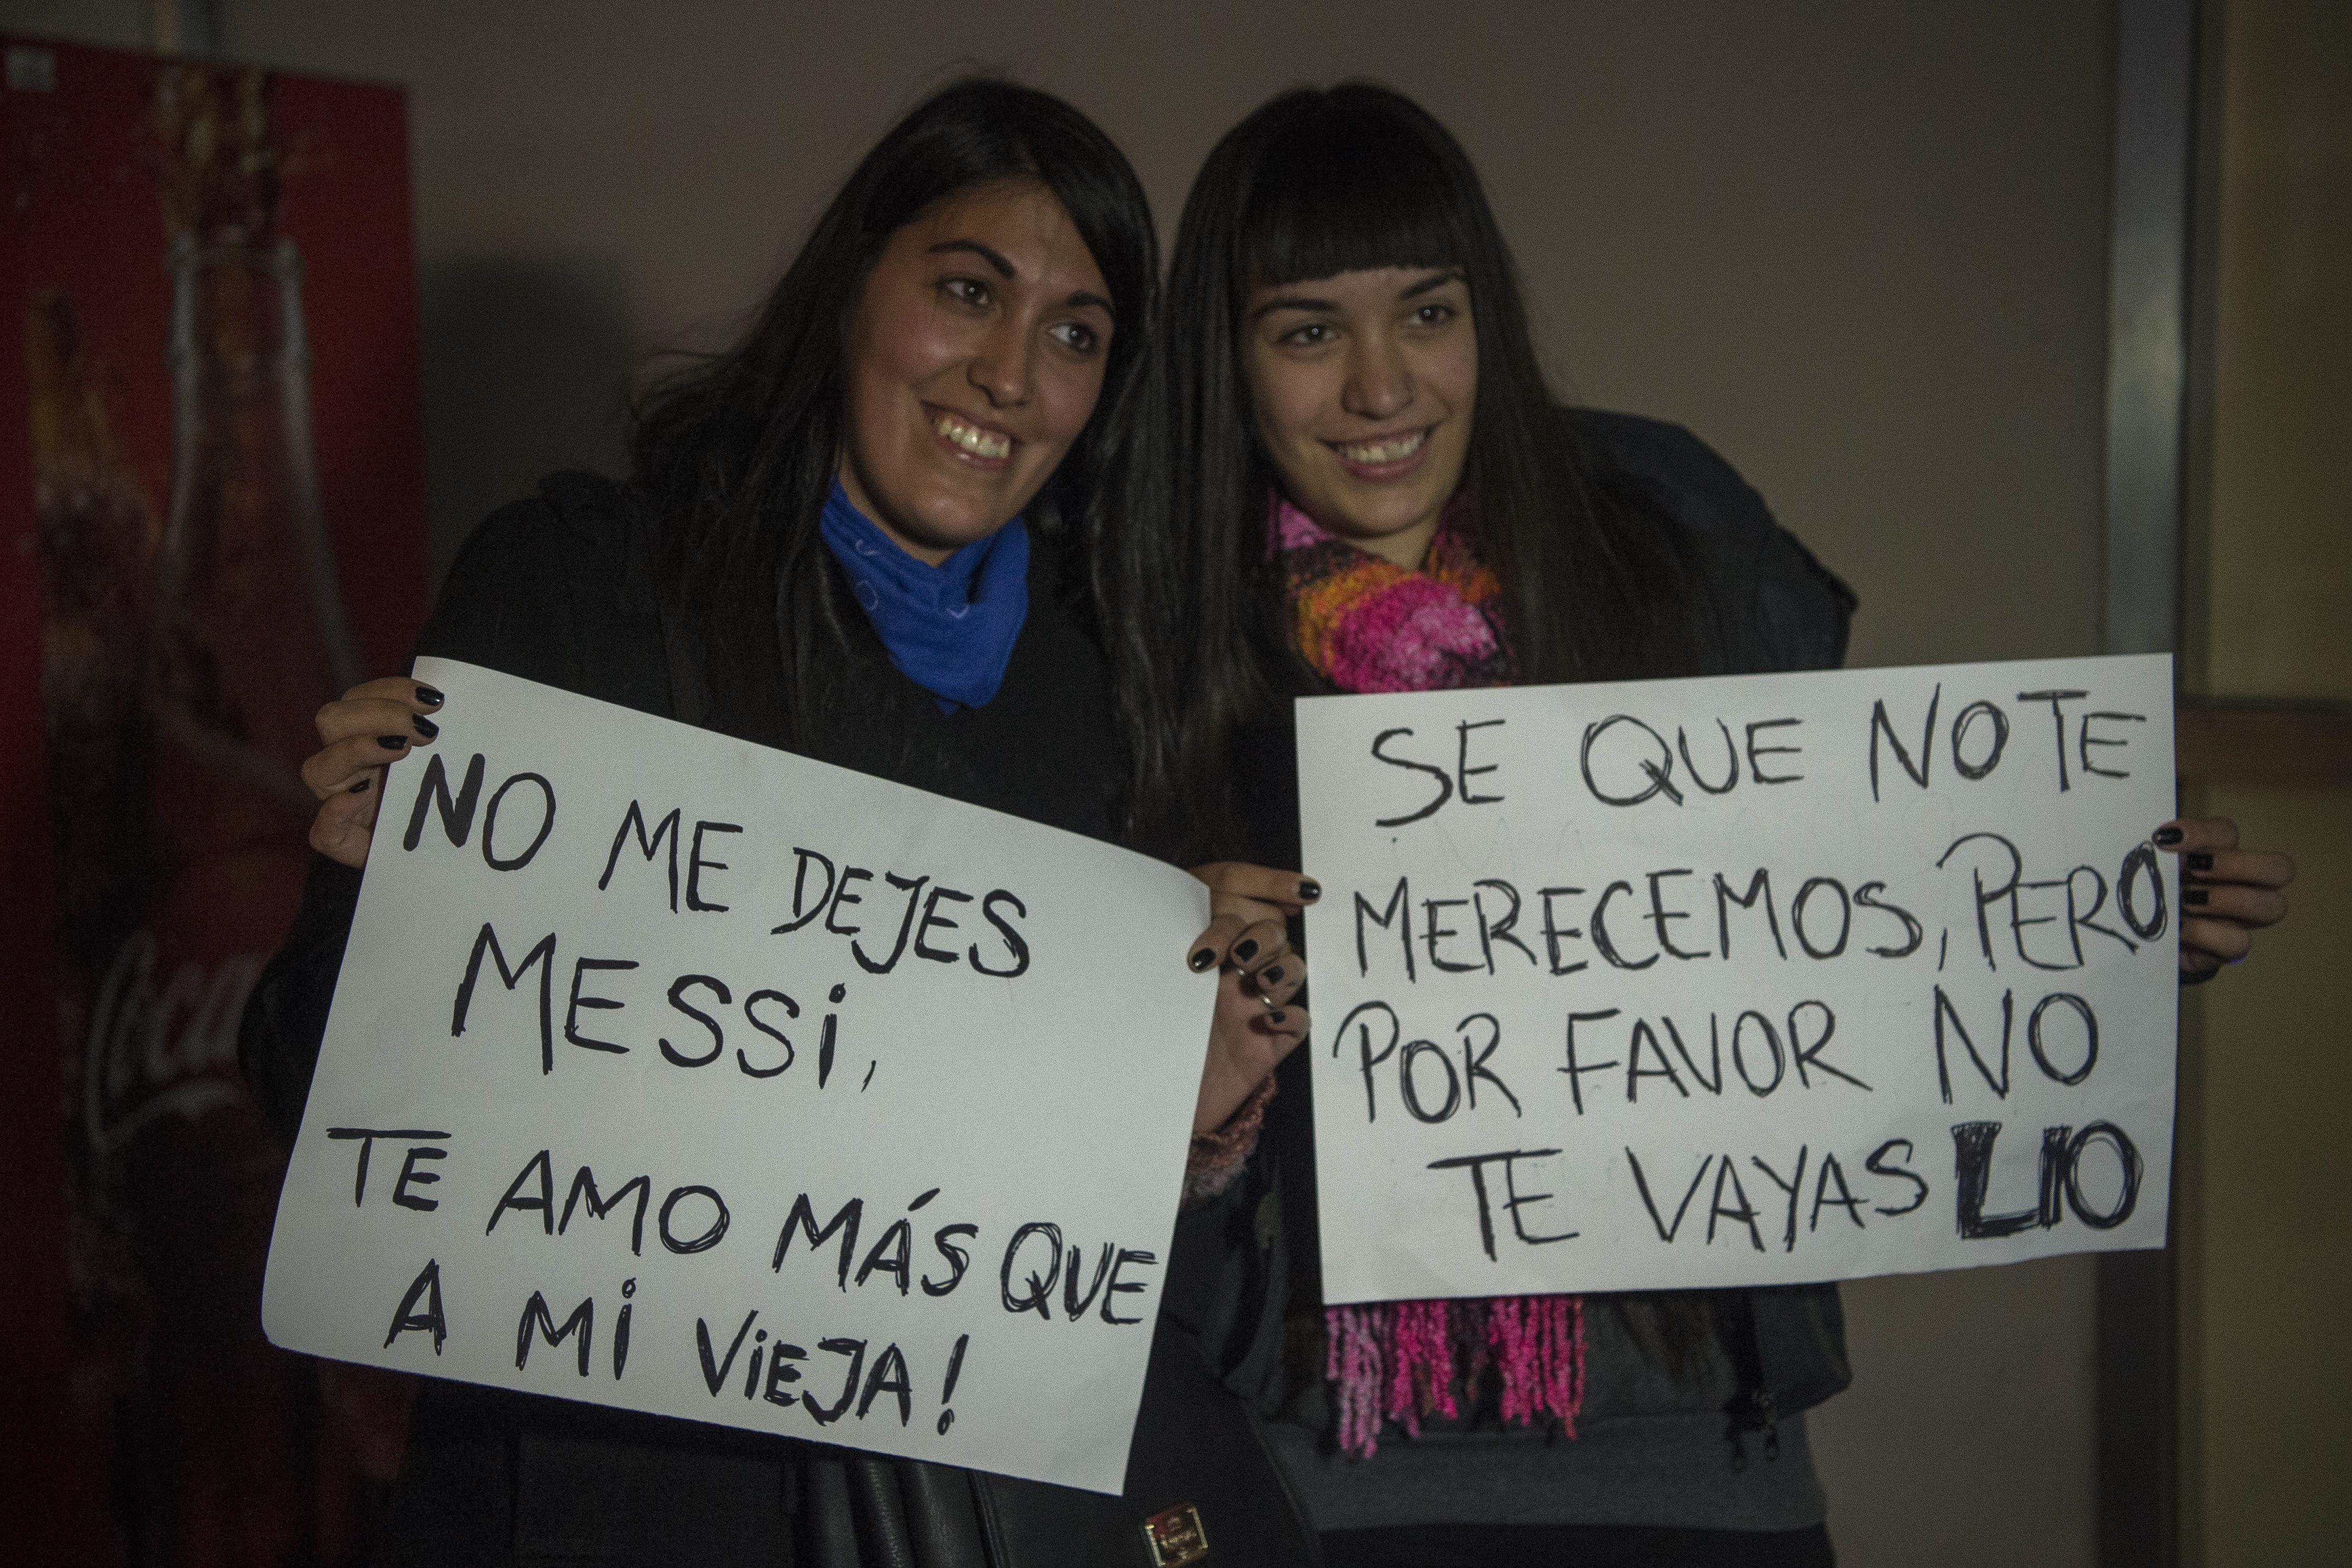 Two young women hold signs asking Lionel Messi no to quit, while waiting for the arrival of Argentina's football team from the Copa America Centenario held in the United States, on June 27, 2016 in Buenos Aires.  Argentina lost the final against Chile 4-2 in the penalty shoot-out. Argentines begged Lionel Messi -who tearfully decided to quit the international team after missing a spot-kick in the shootout- not to leave the national team despite its traumatic final. / AFP / EITAN ABRAMOVICH        (Photo credit should read EITAN ABRAMOVICH/AFP/Getty Images)